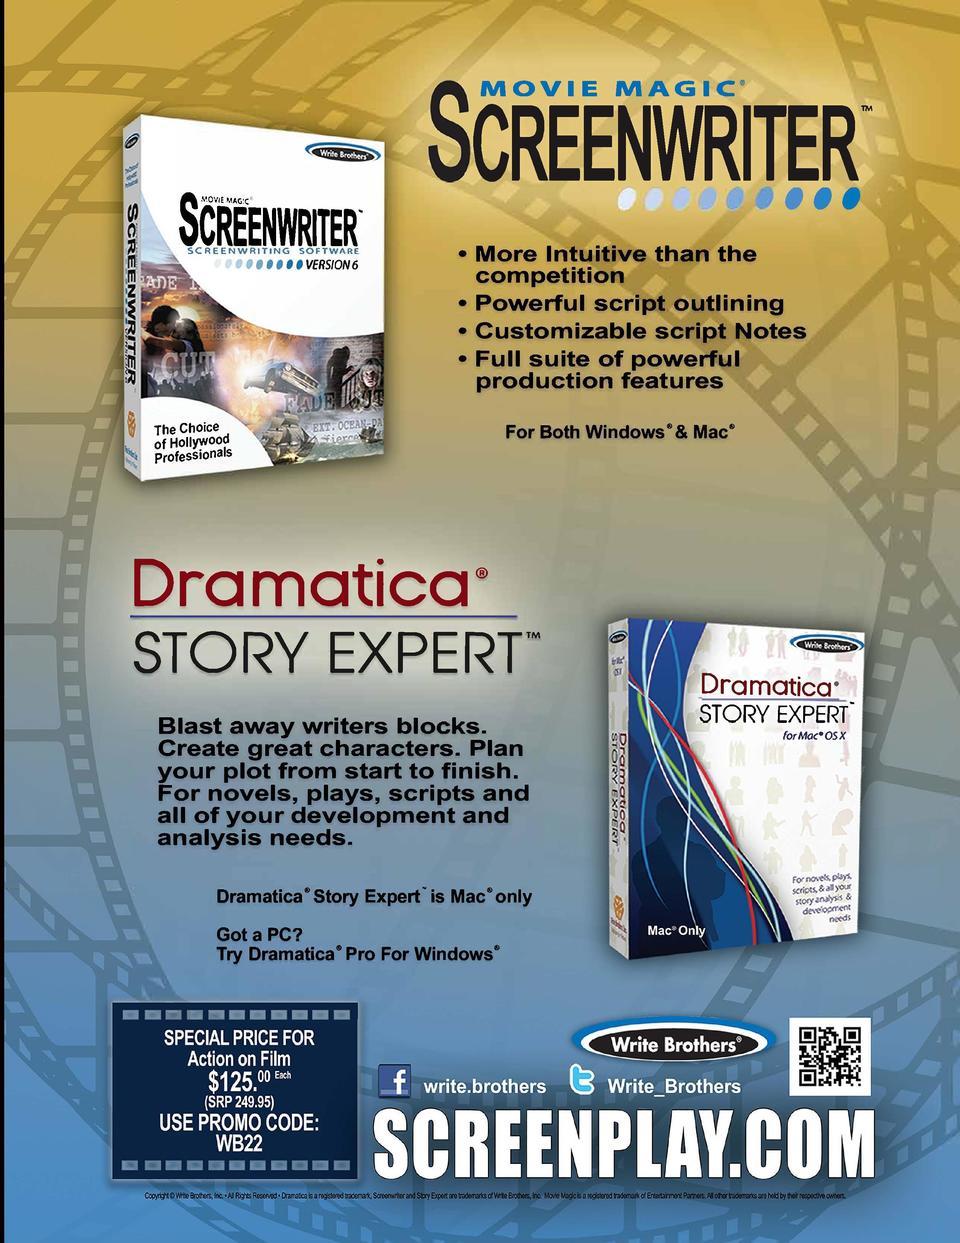 CREENWRITER,,, MOVIE MAGIC     SCREENWRITER. SCREENWRITING  SOFTWARE  I U U VERSION 6      More Intuitive than the competi...